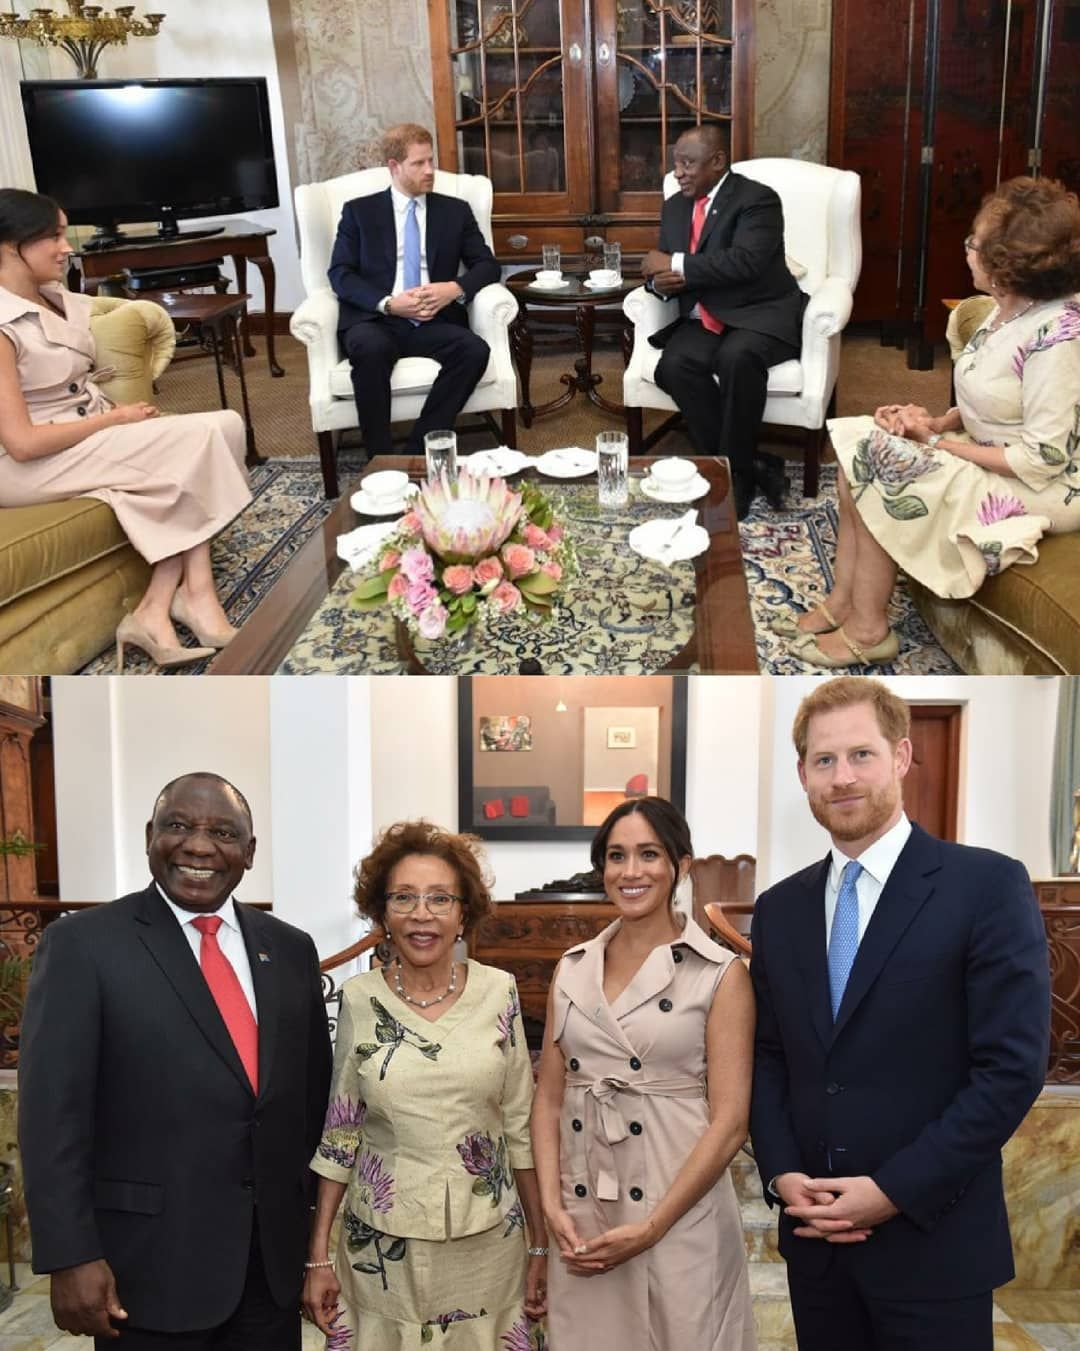 President Cyril Ramaphosa And First Lady Dr Tshepo Motsepe Receive A Courtesy Call From Their Royal Highnesses The Duke And Duchess Of